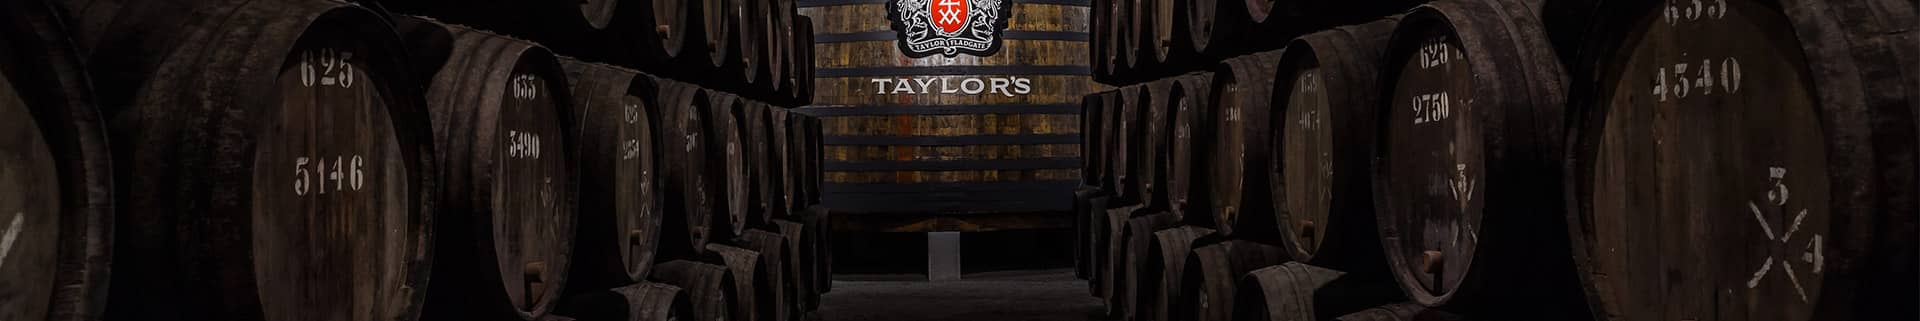 Buy your tickets securely online and save time on your arrival at Taylor's Port cellars.